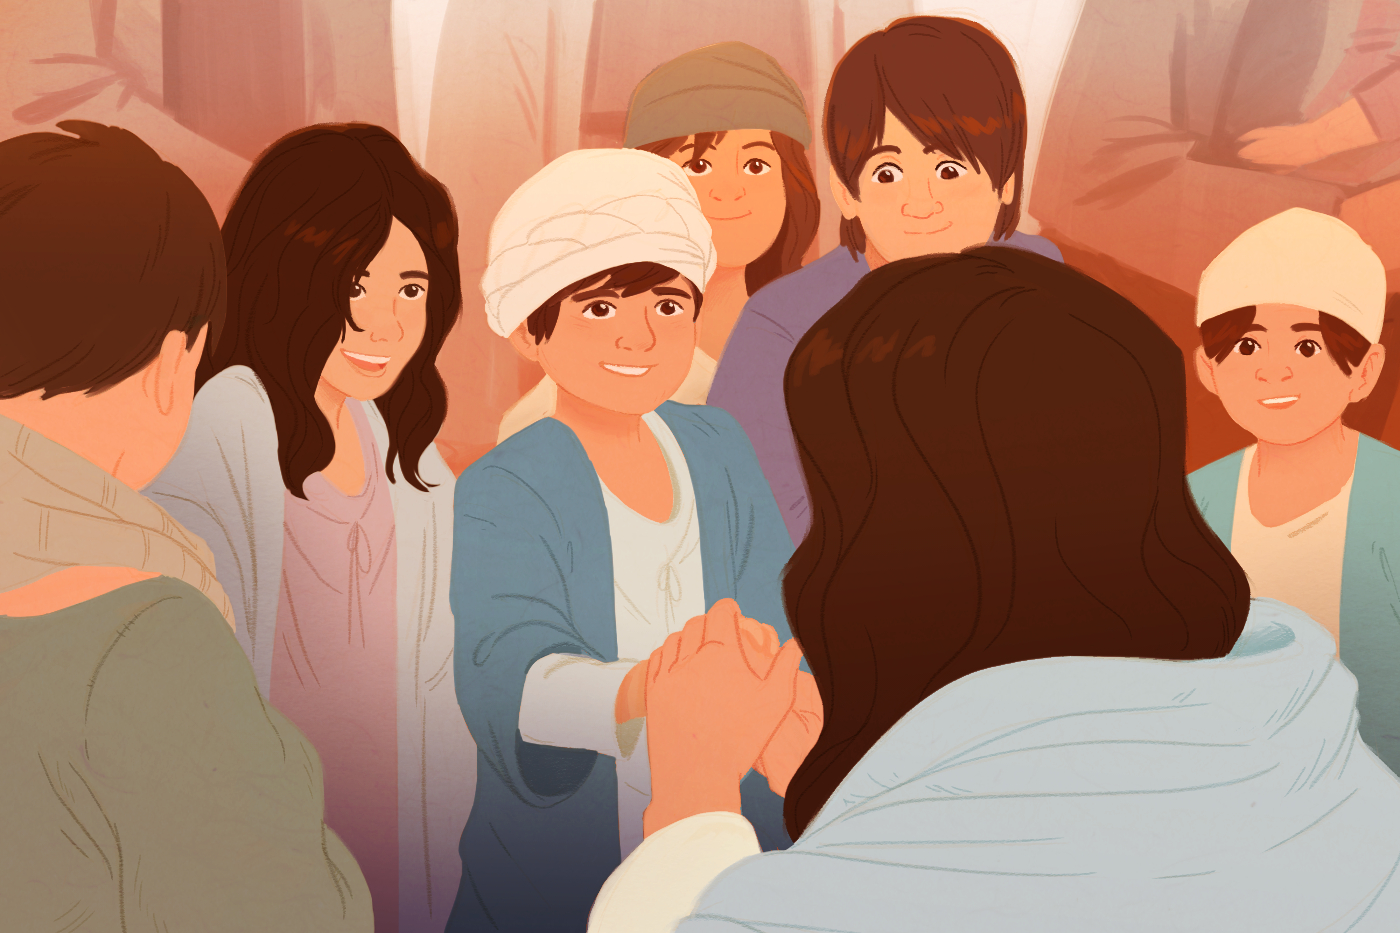 The Church of Jesus Christ of Latter-day Saints is asking all adults in the U.S. and Canada serving or interacting with children and youth to complete a new training course on preventing and responding to abuse.